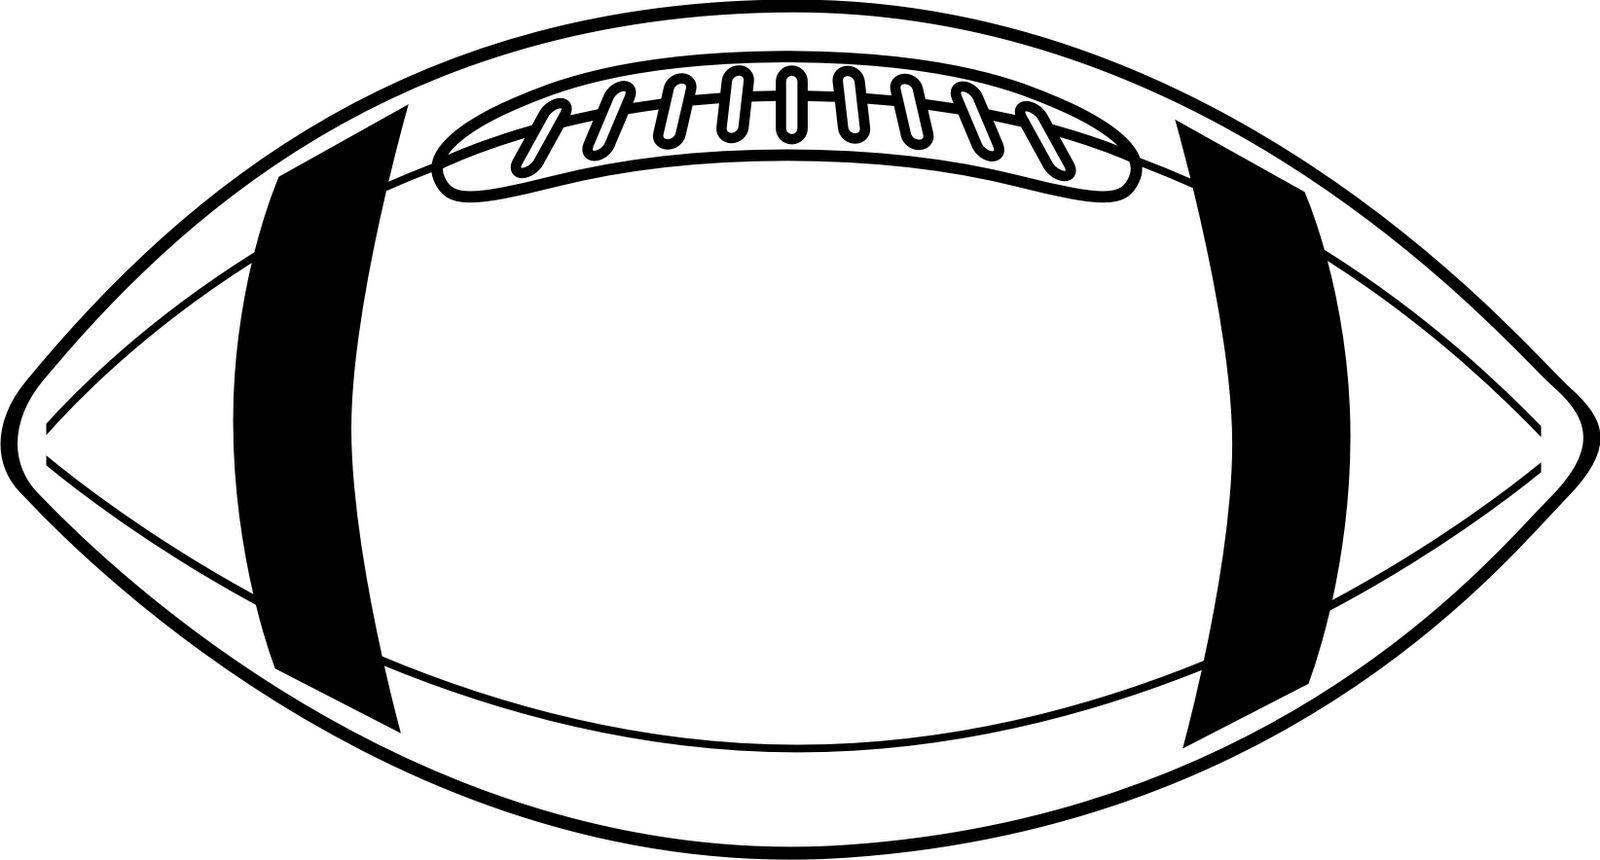 Clip Art Football Field Black And White